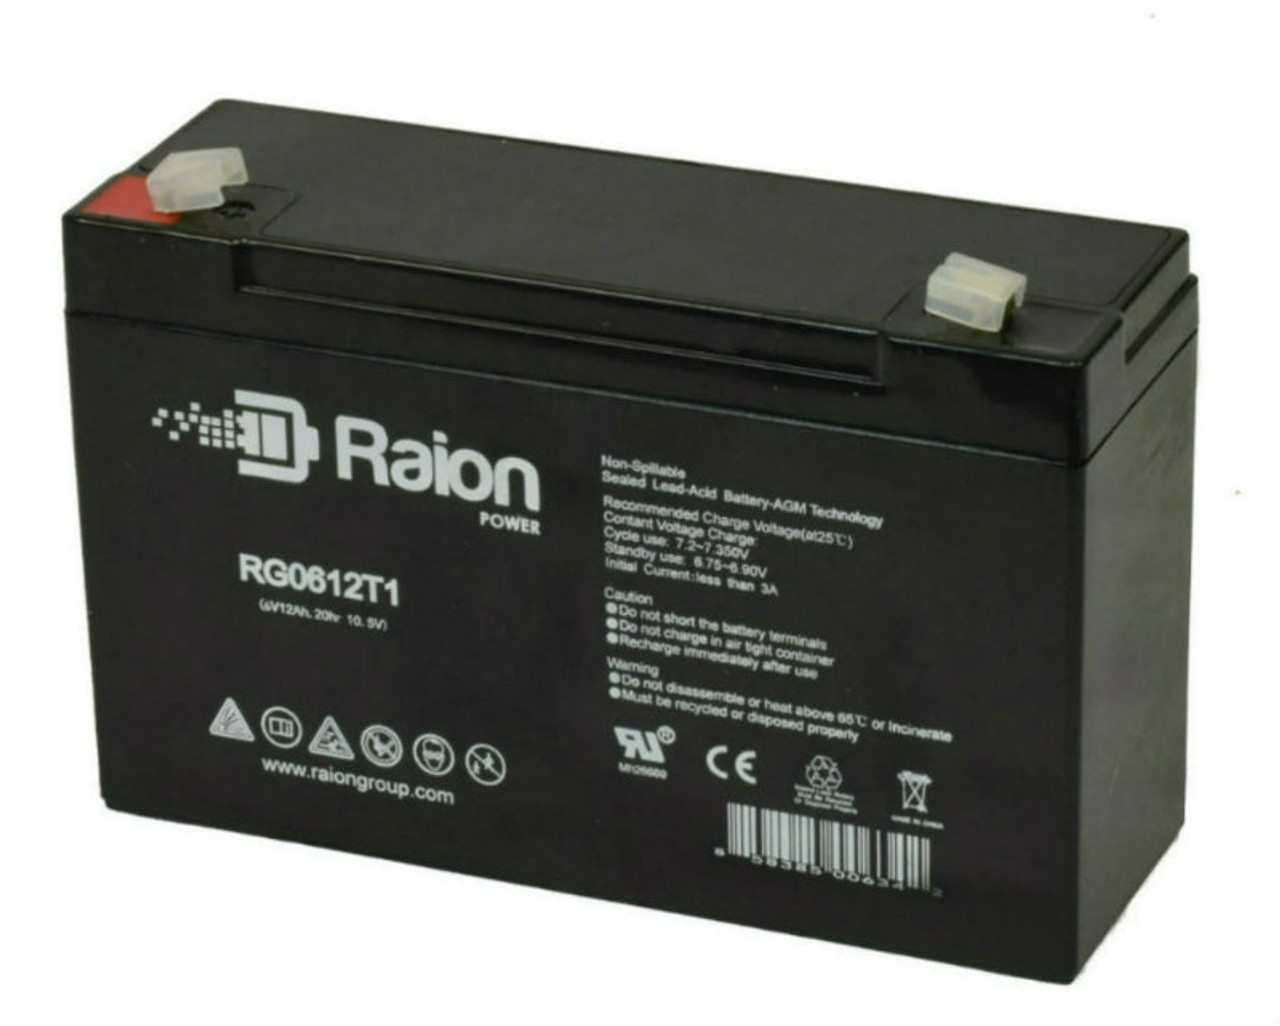 Raion Power RG06120T1 Replacement Battery Pack for Light Alarms S12E3 emergency light